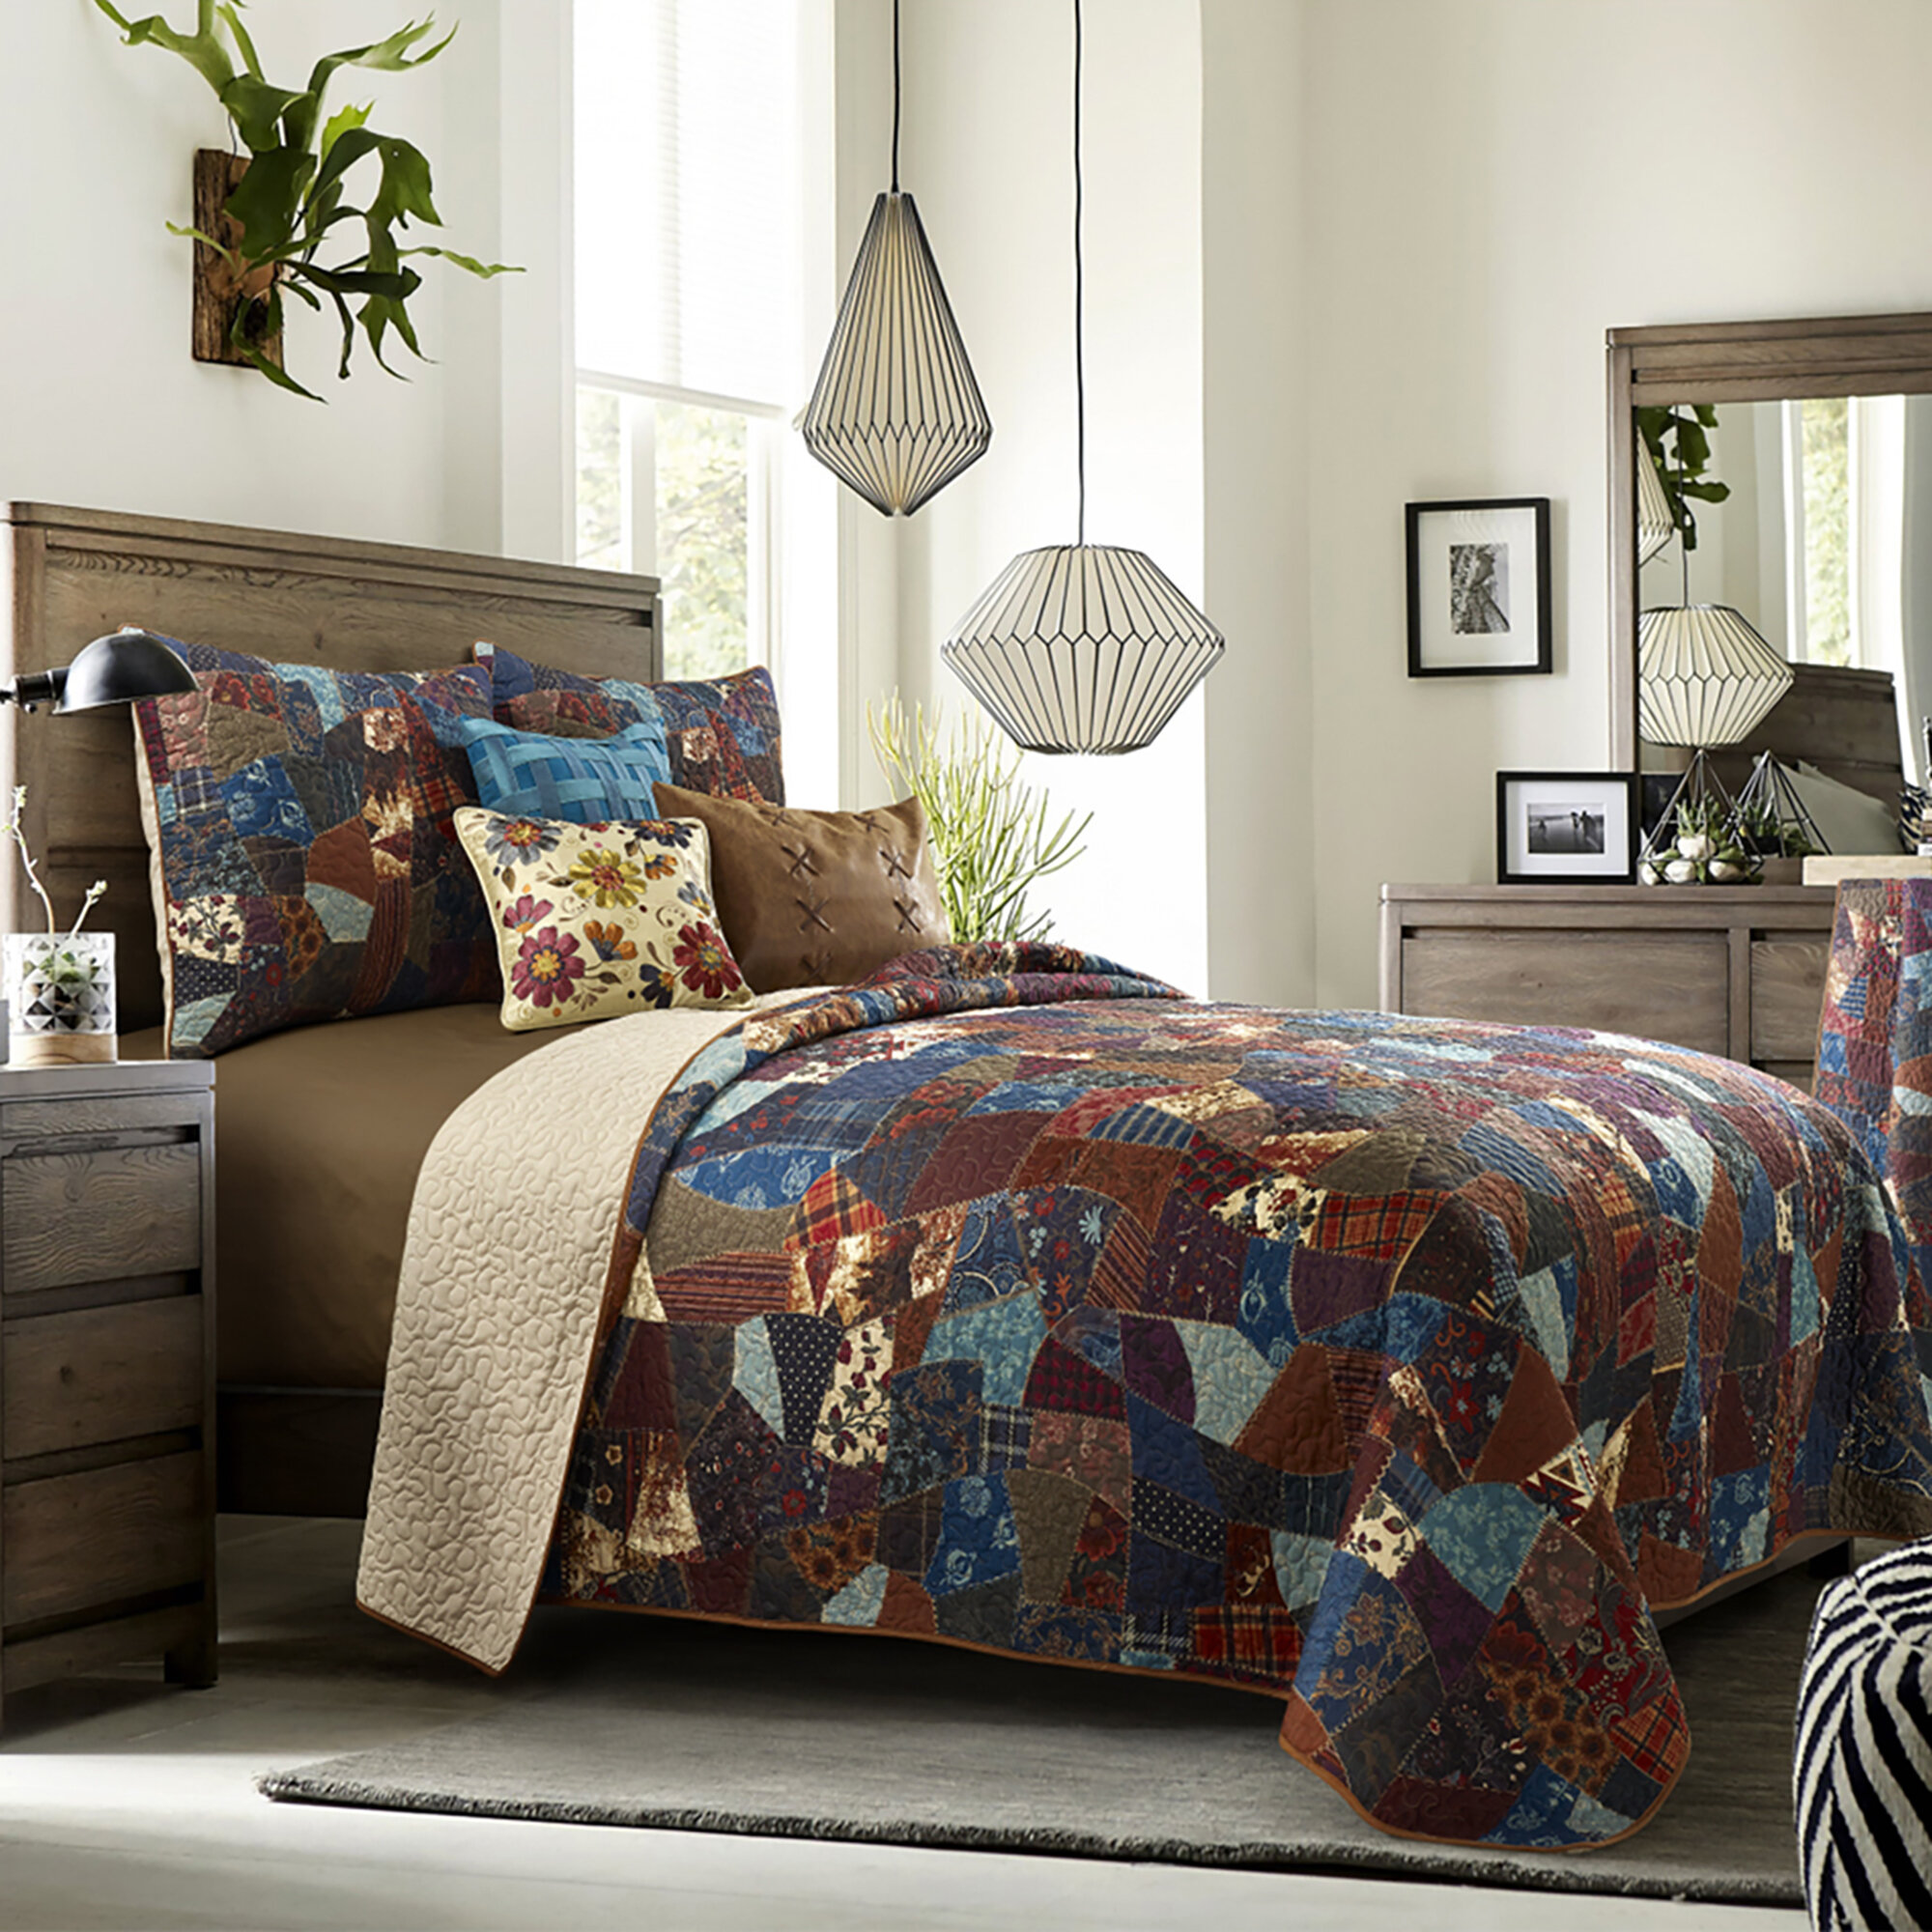 Millwood Pines Janell Dizzy Quilt Set Reviews Wayfair